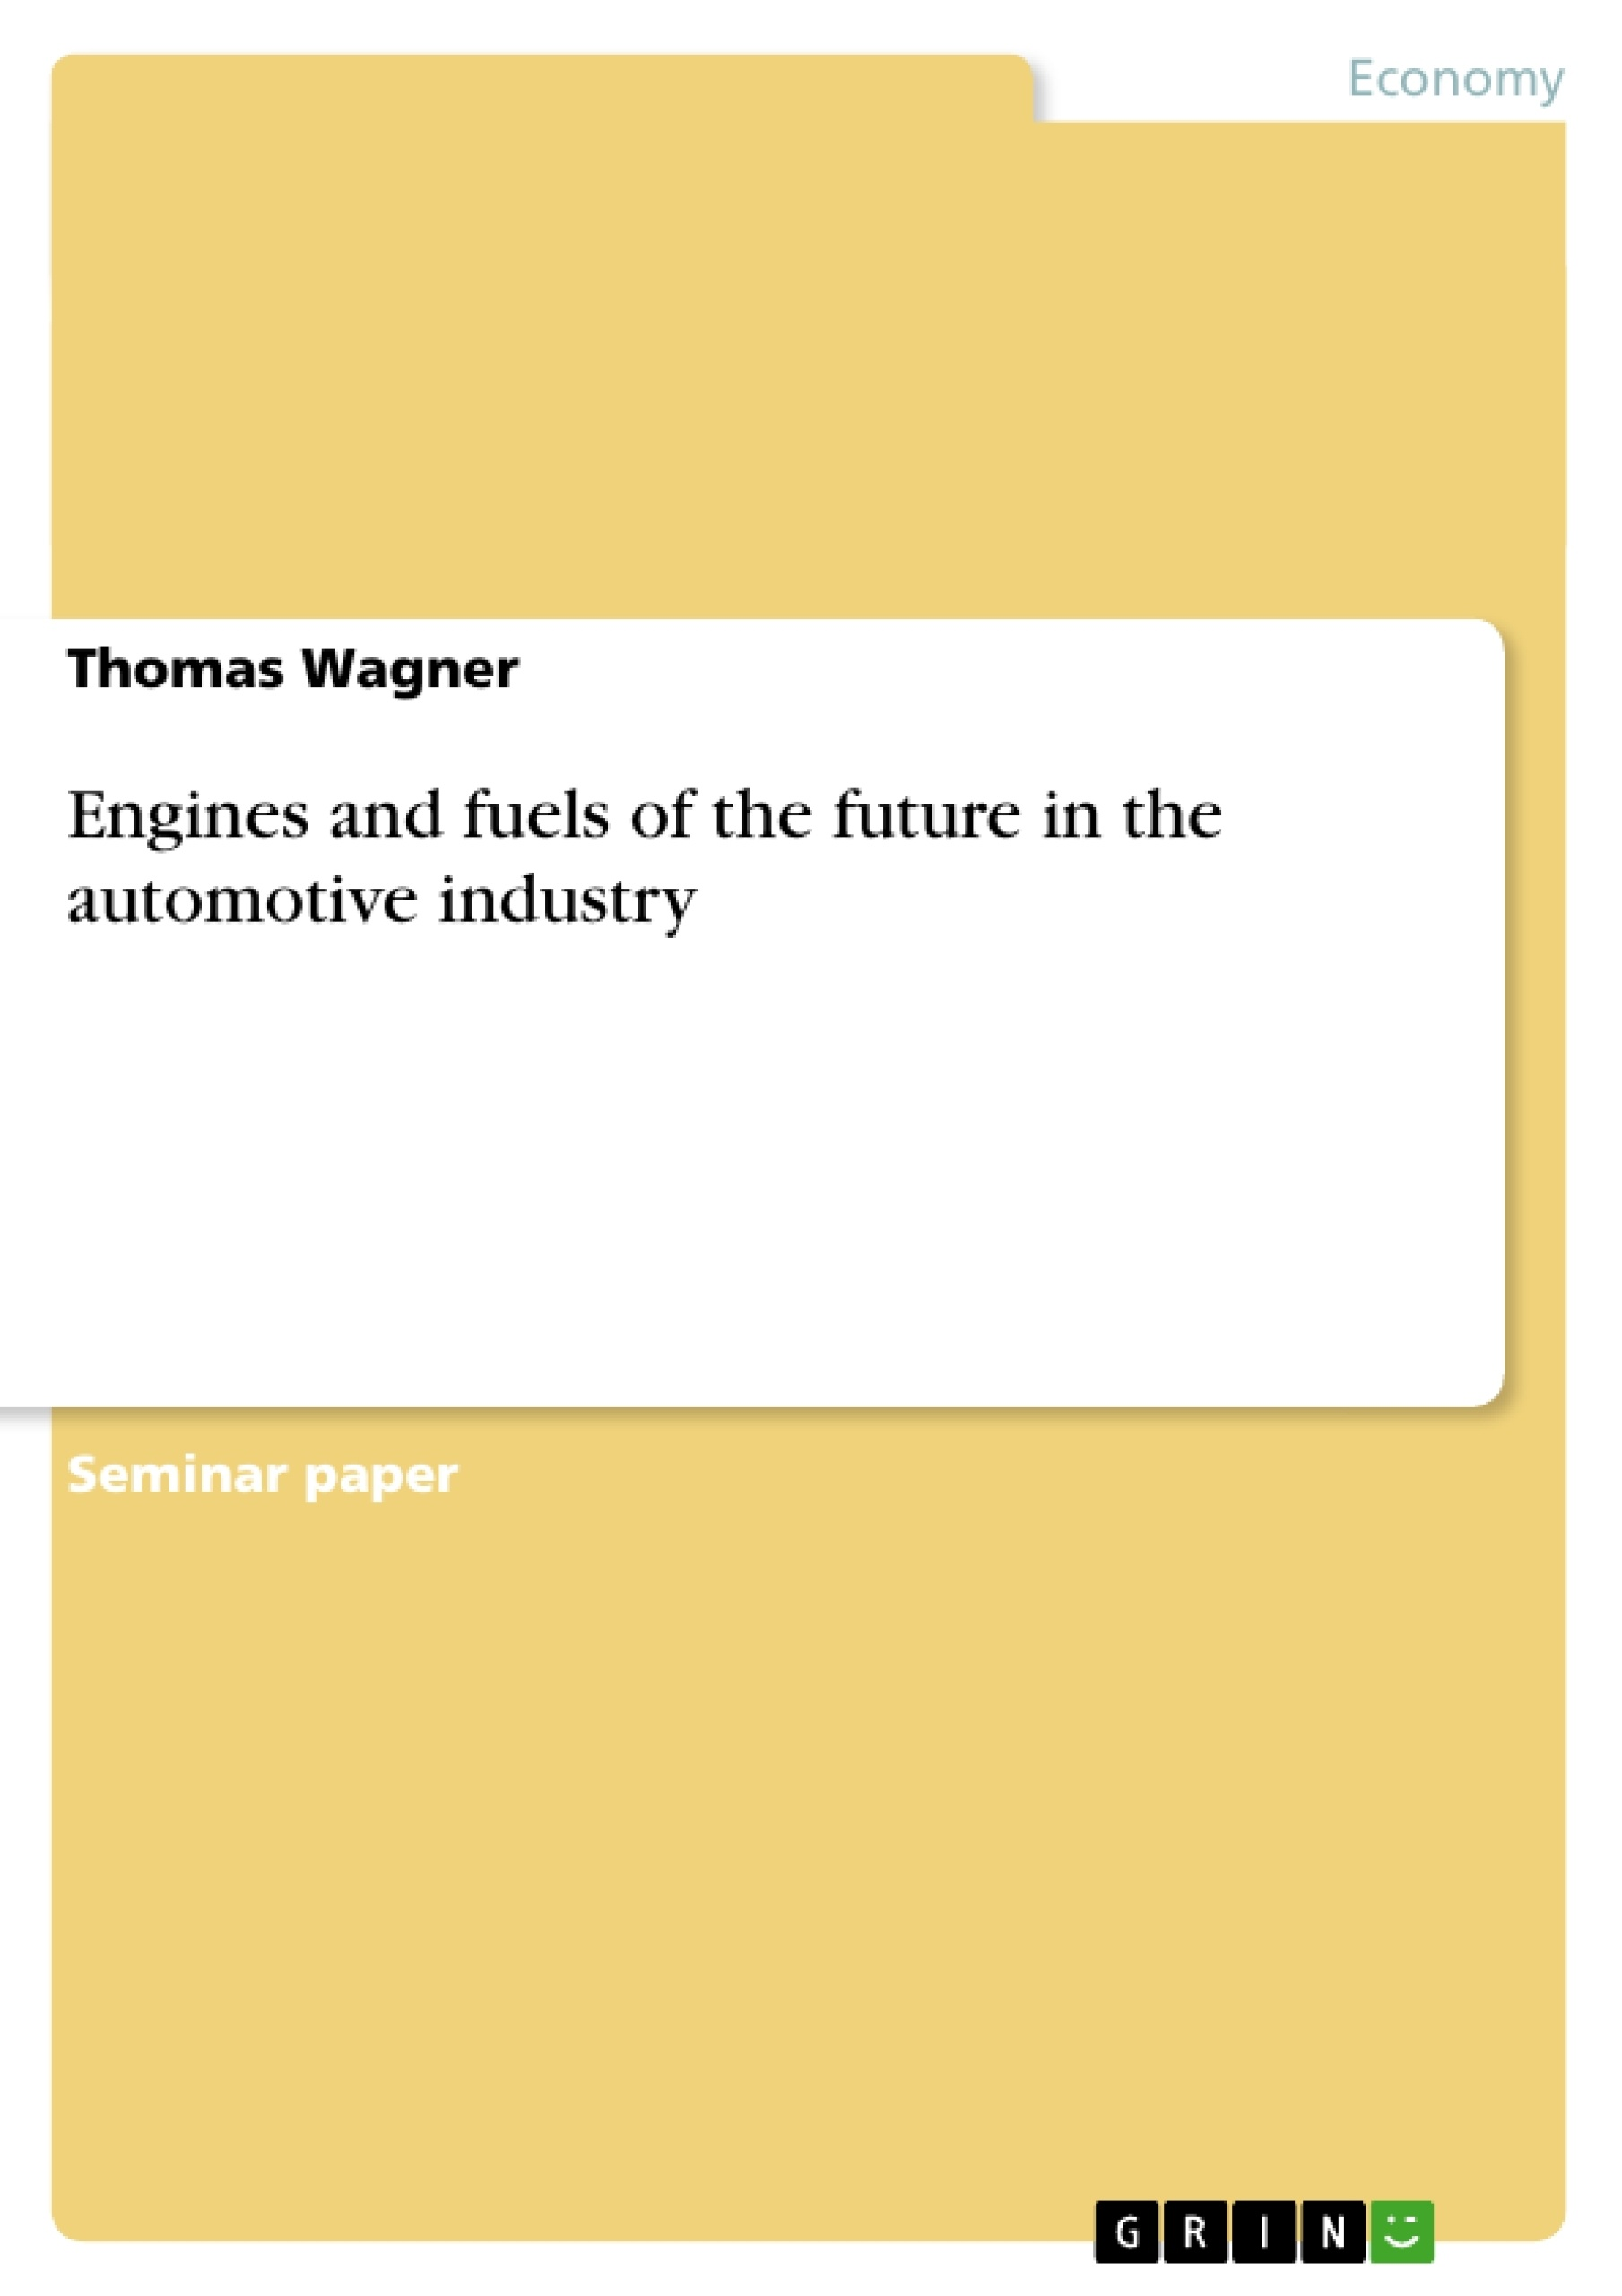 Title: Engines and fuels of the future in the automotive industry